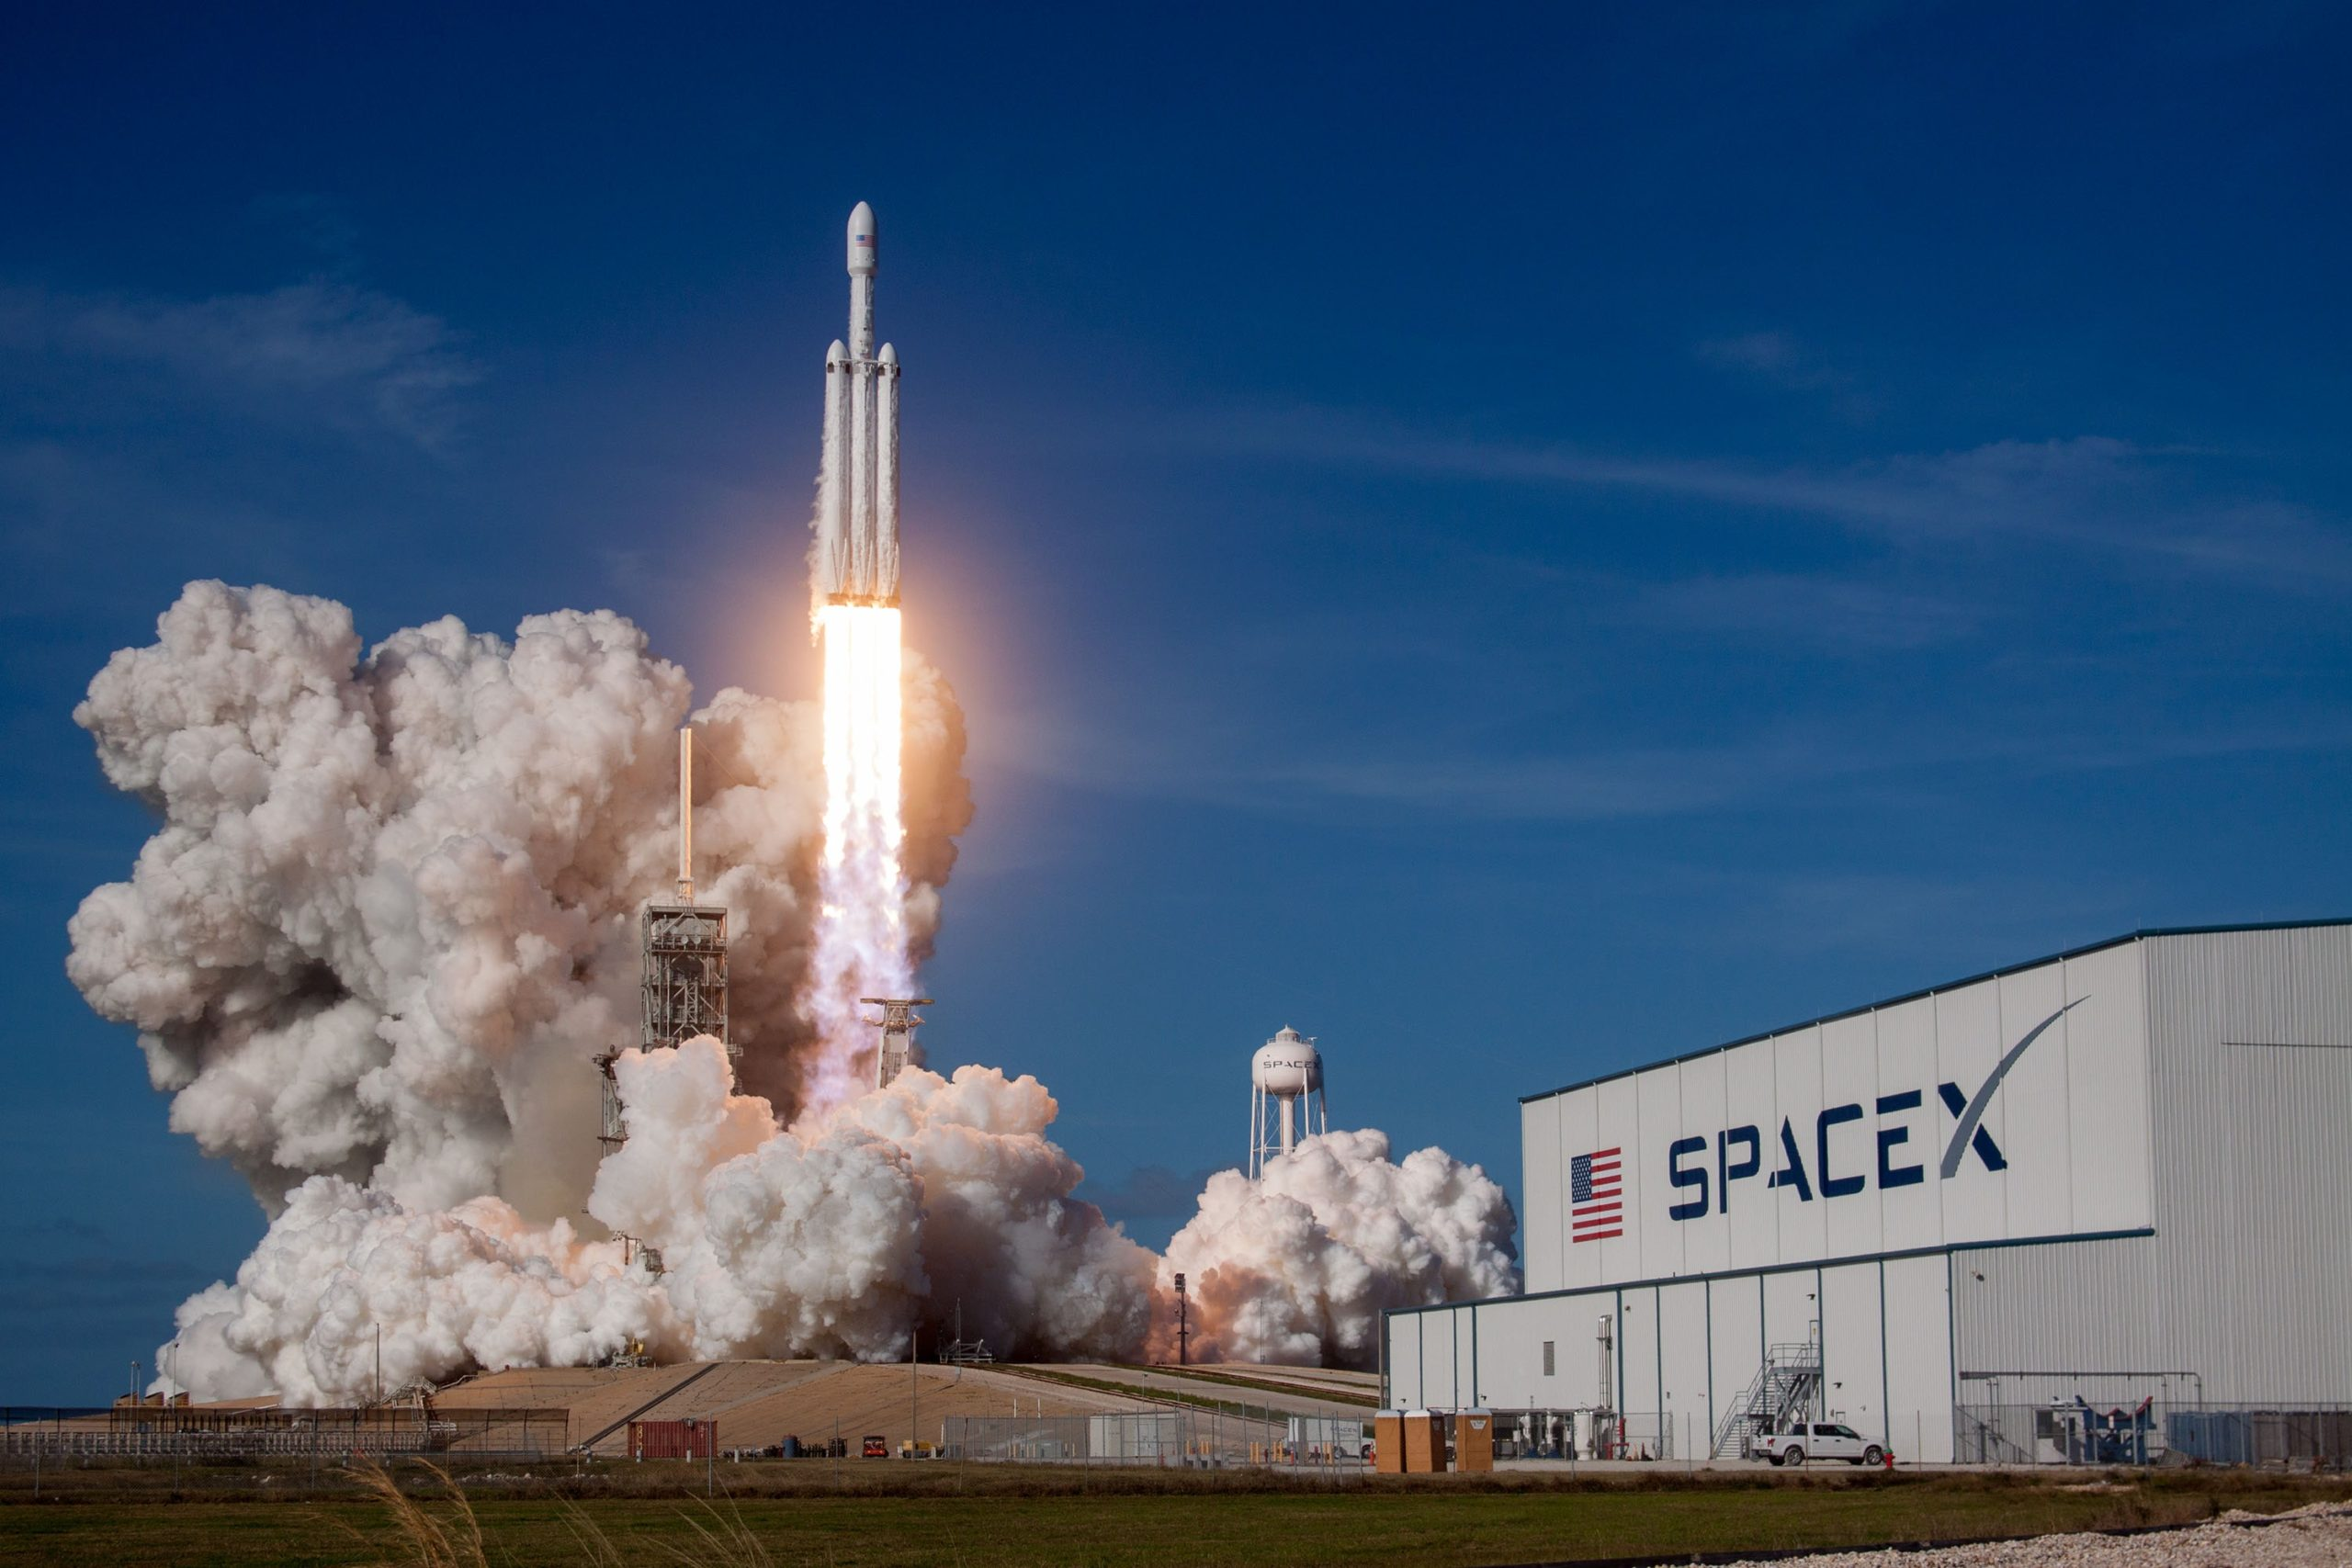 10 YouTubers To Follow To Get The Latest SpaceX News